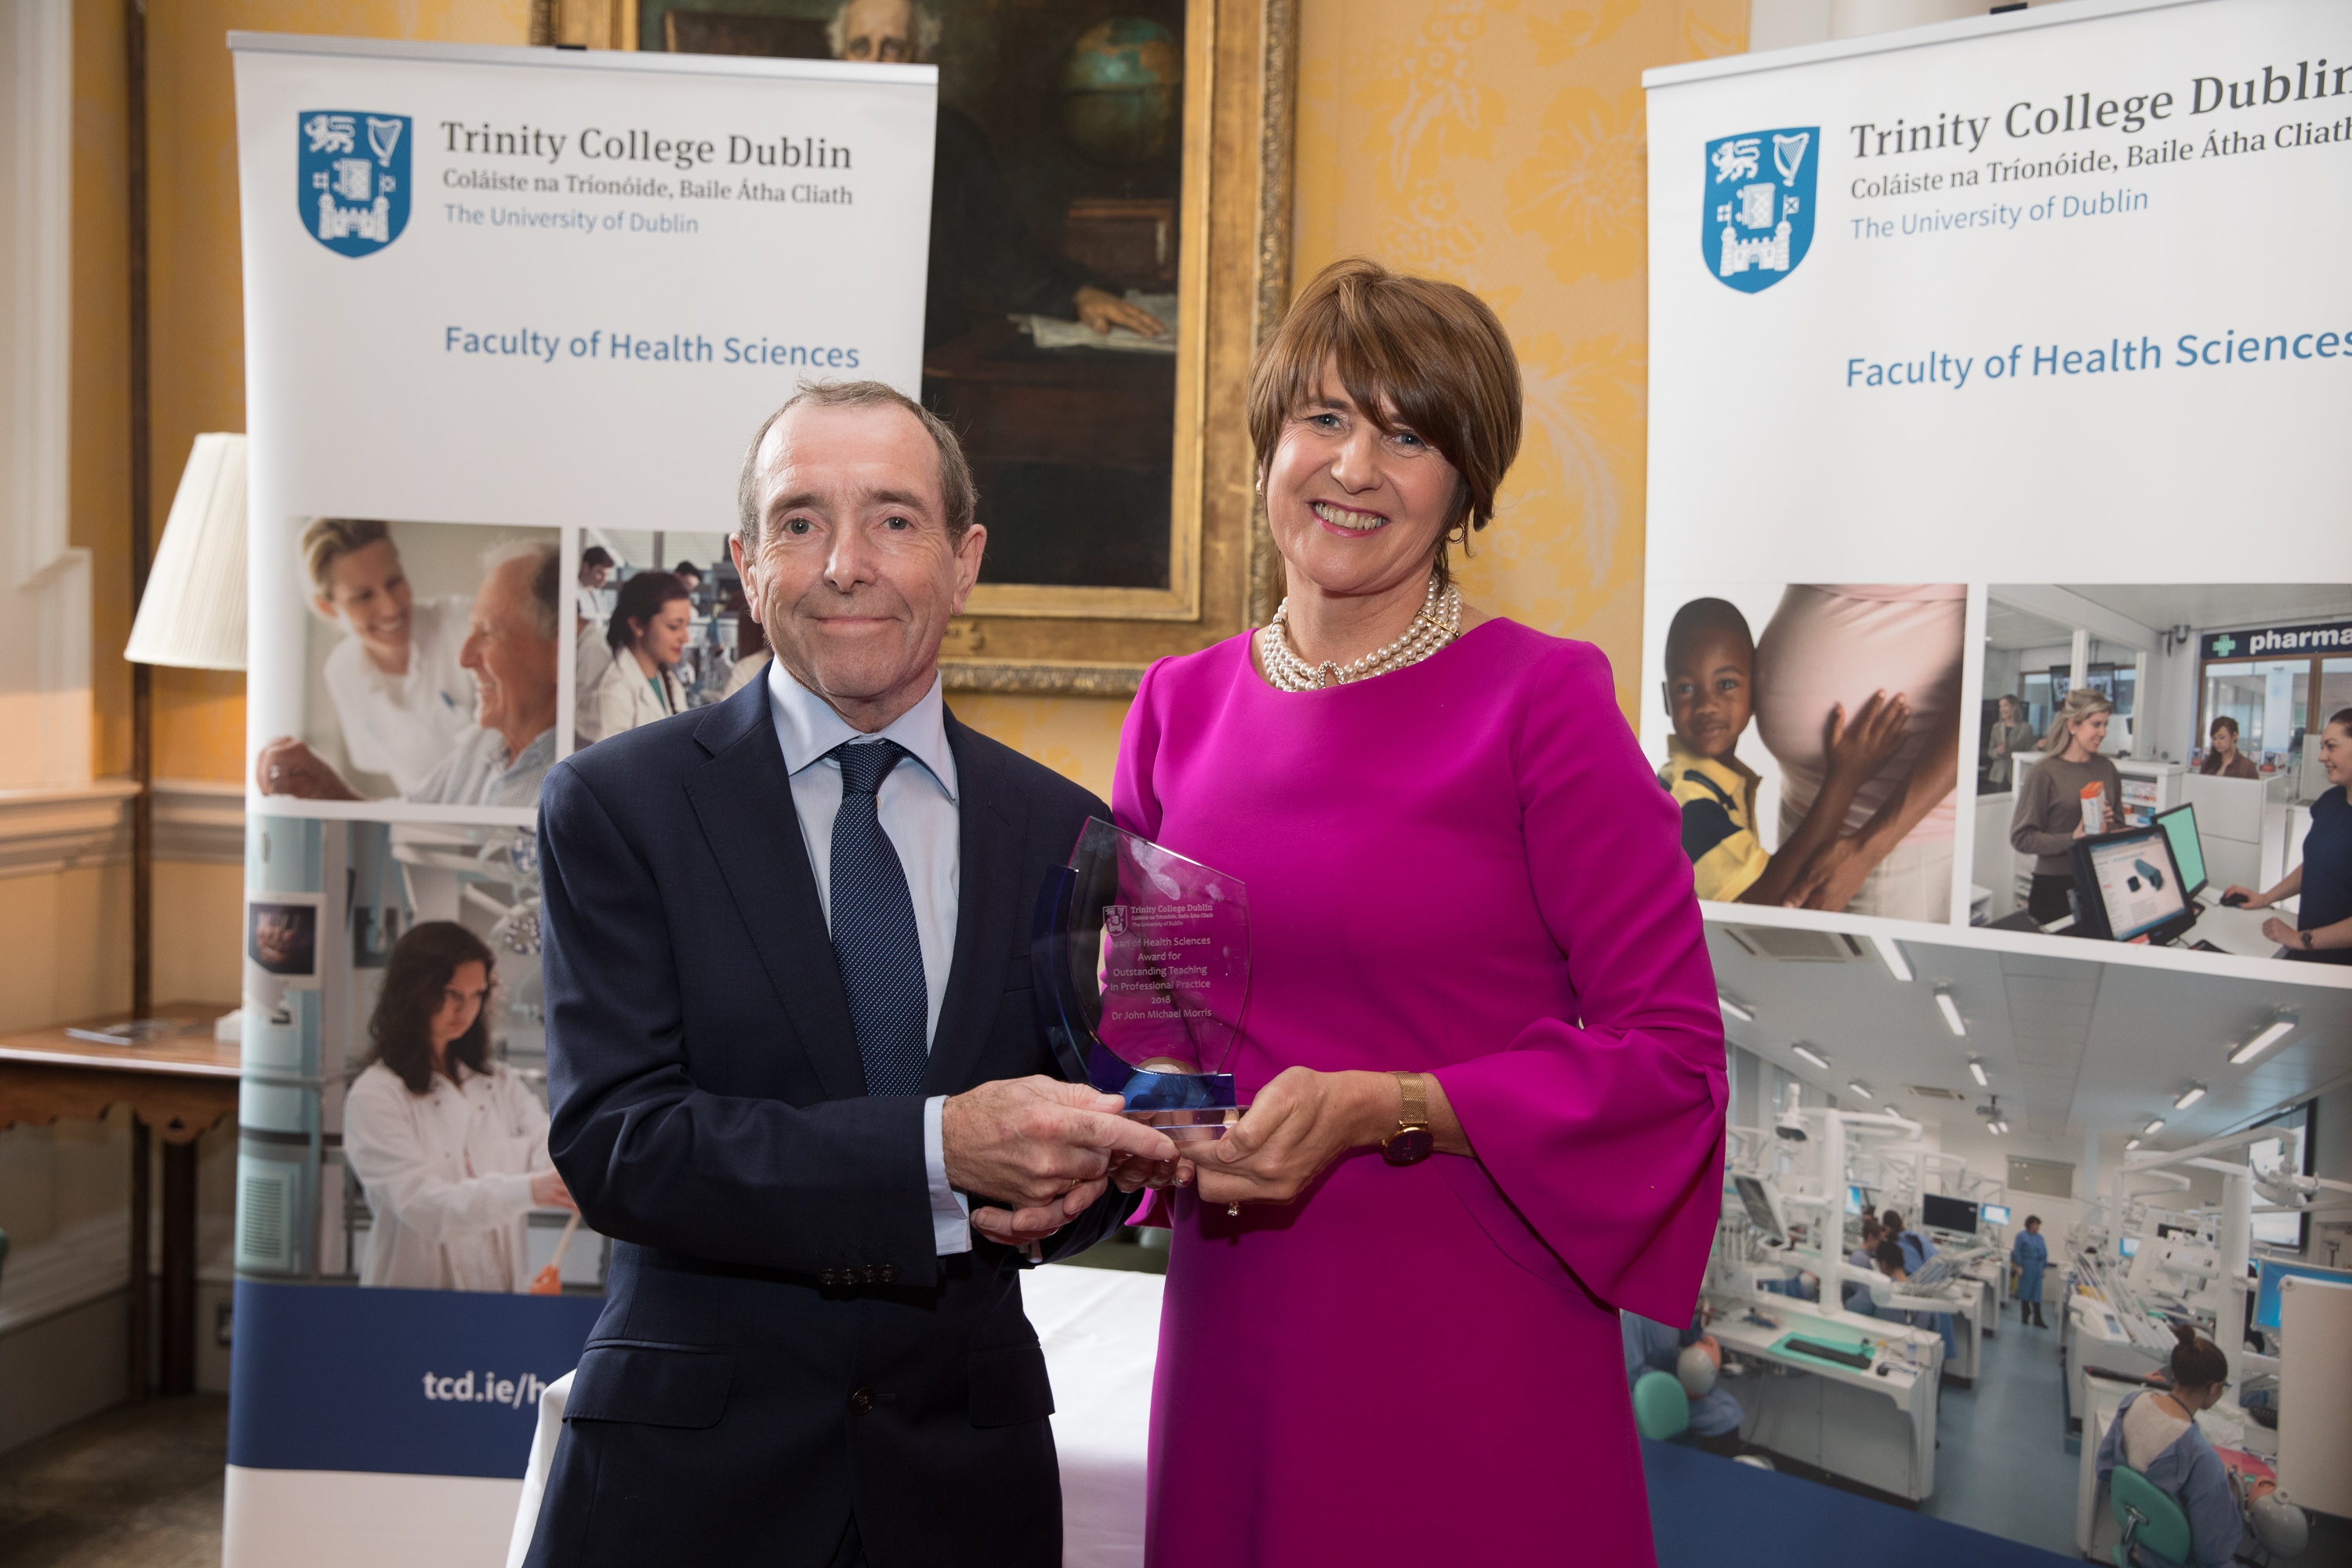 Dean's Award for Outstanding Contribution to Teaching in